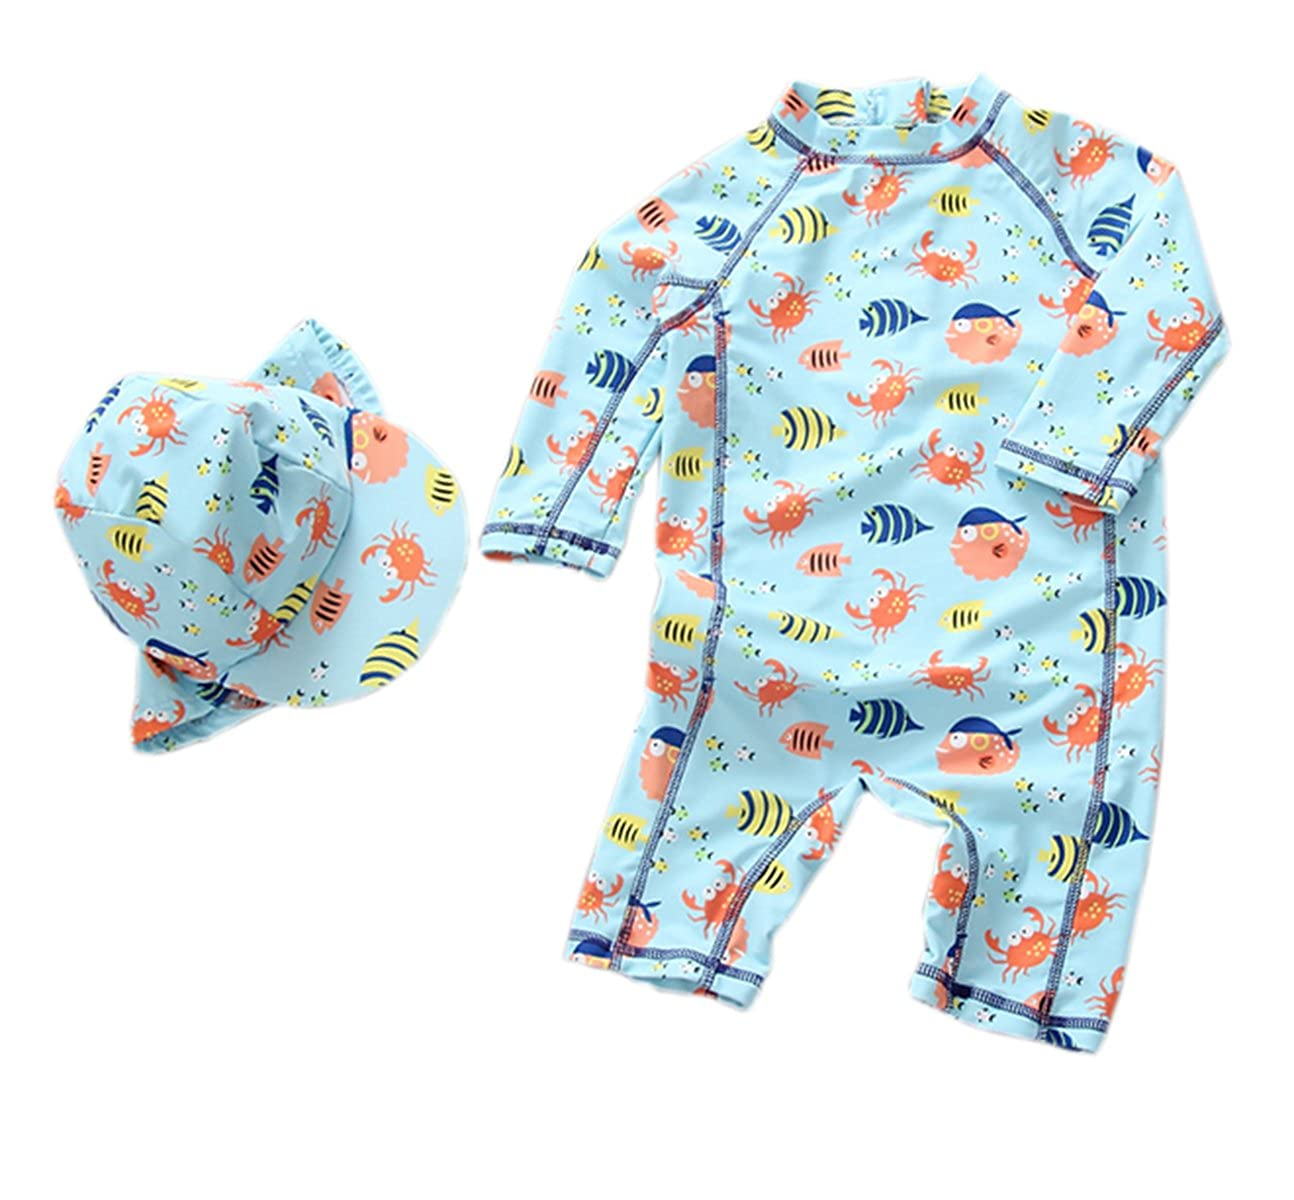 Sun Protective Baby Boys Swimsuit Toddlers One Piece Swimwear with Hat Shark Rash Guard UPF 50+